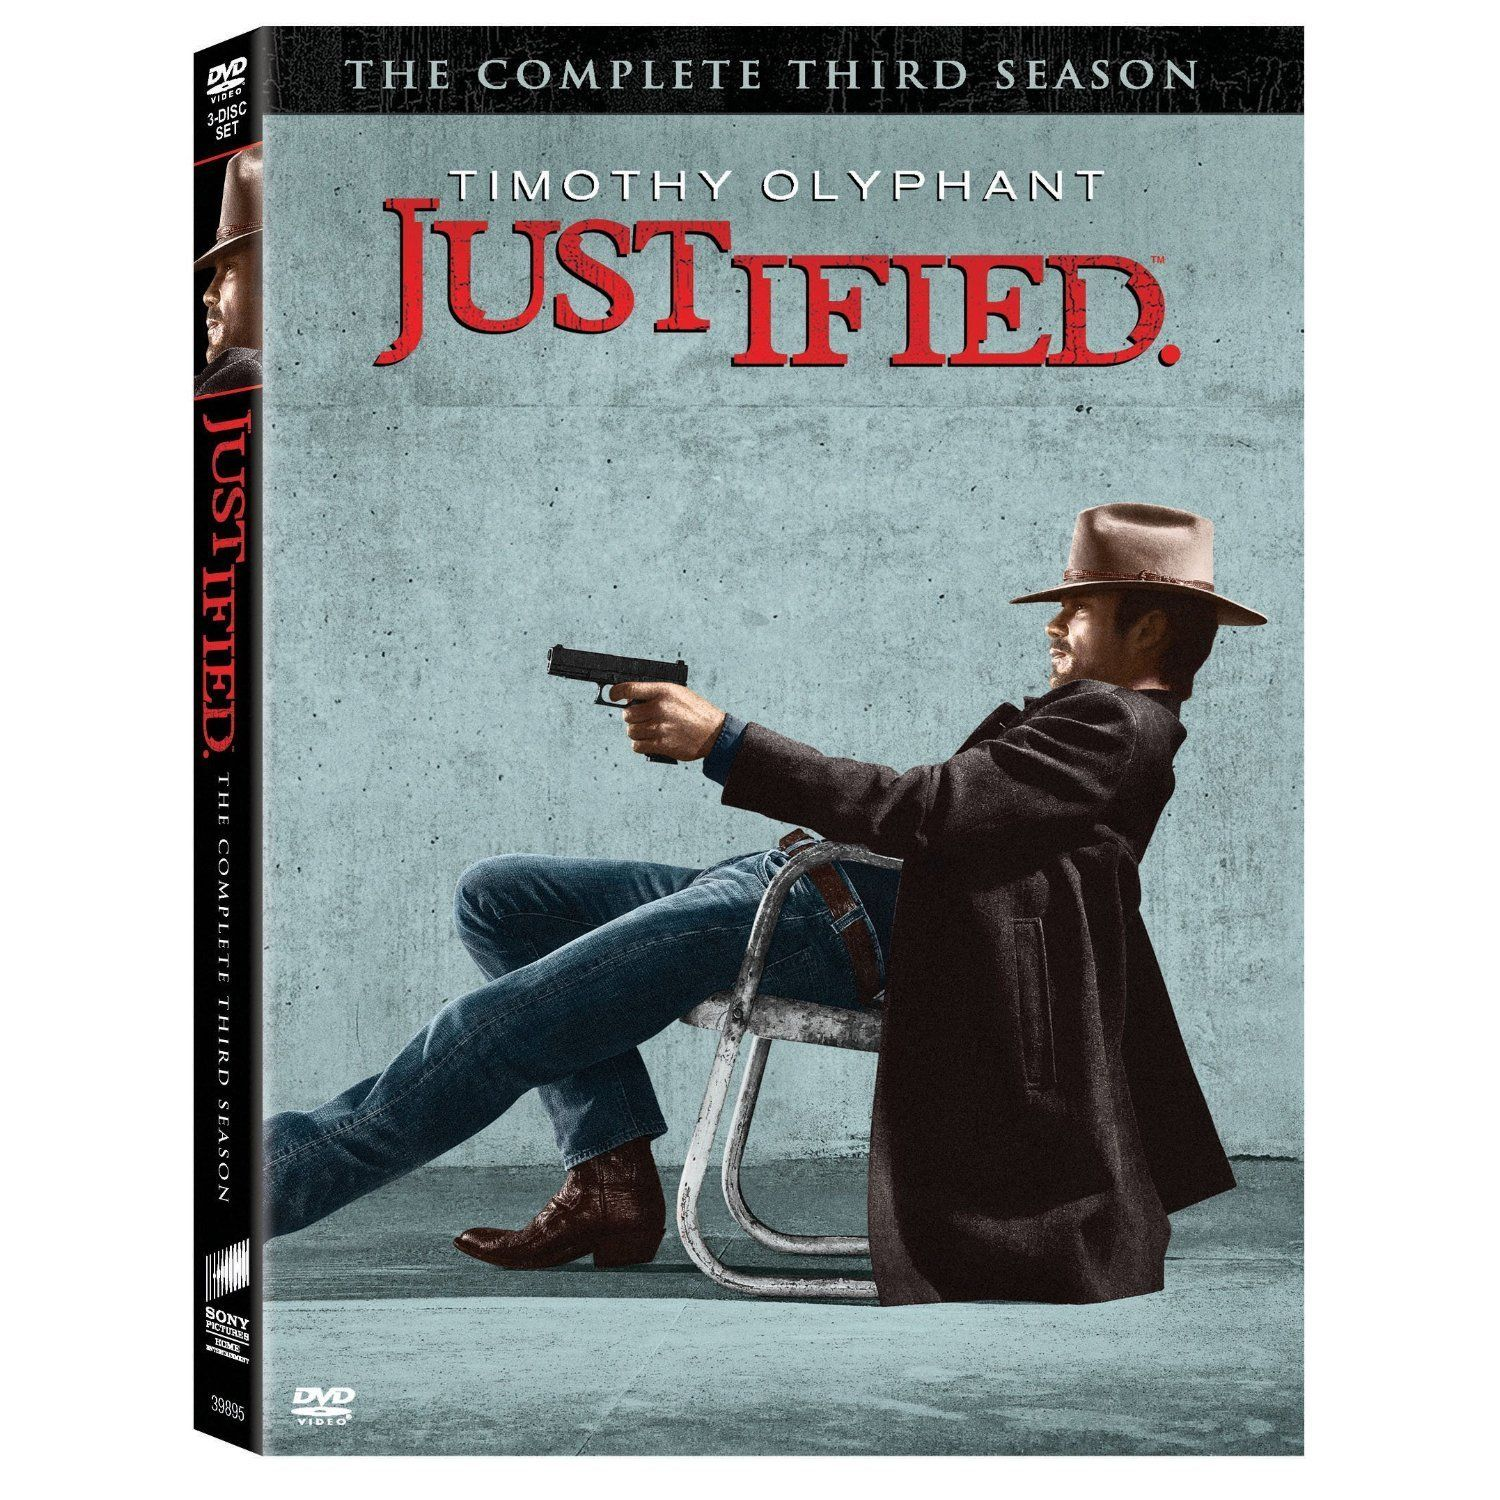 JUSTIFIED Season Poster See photos of the FX WesternCrime TV